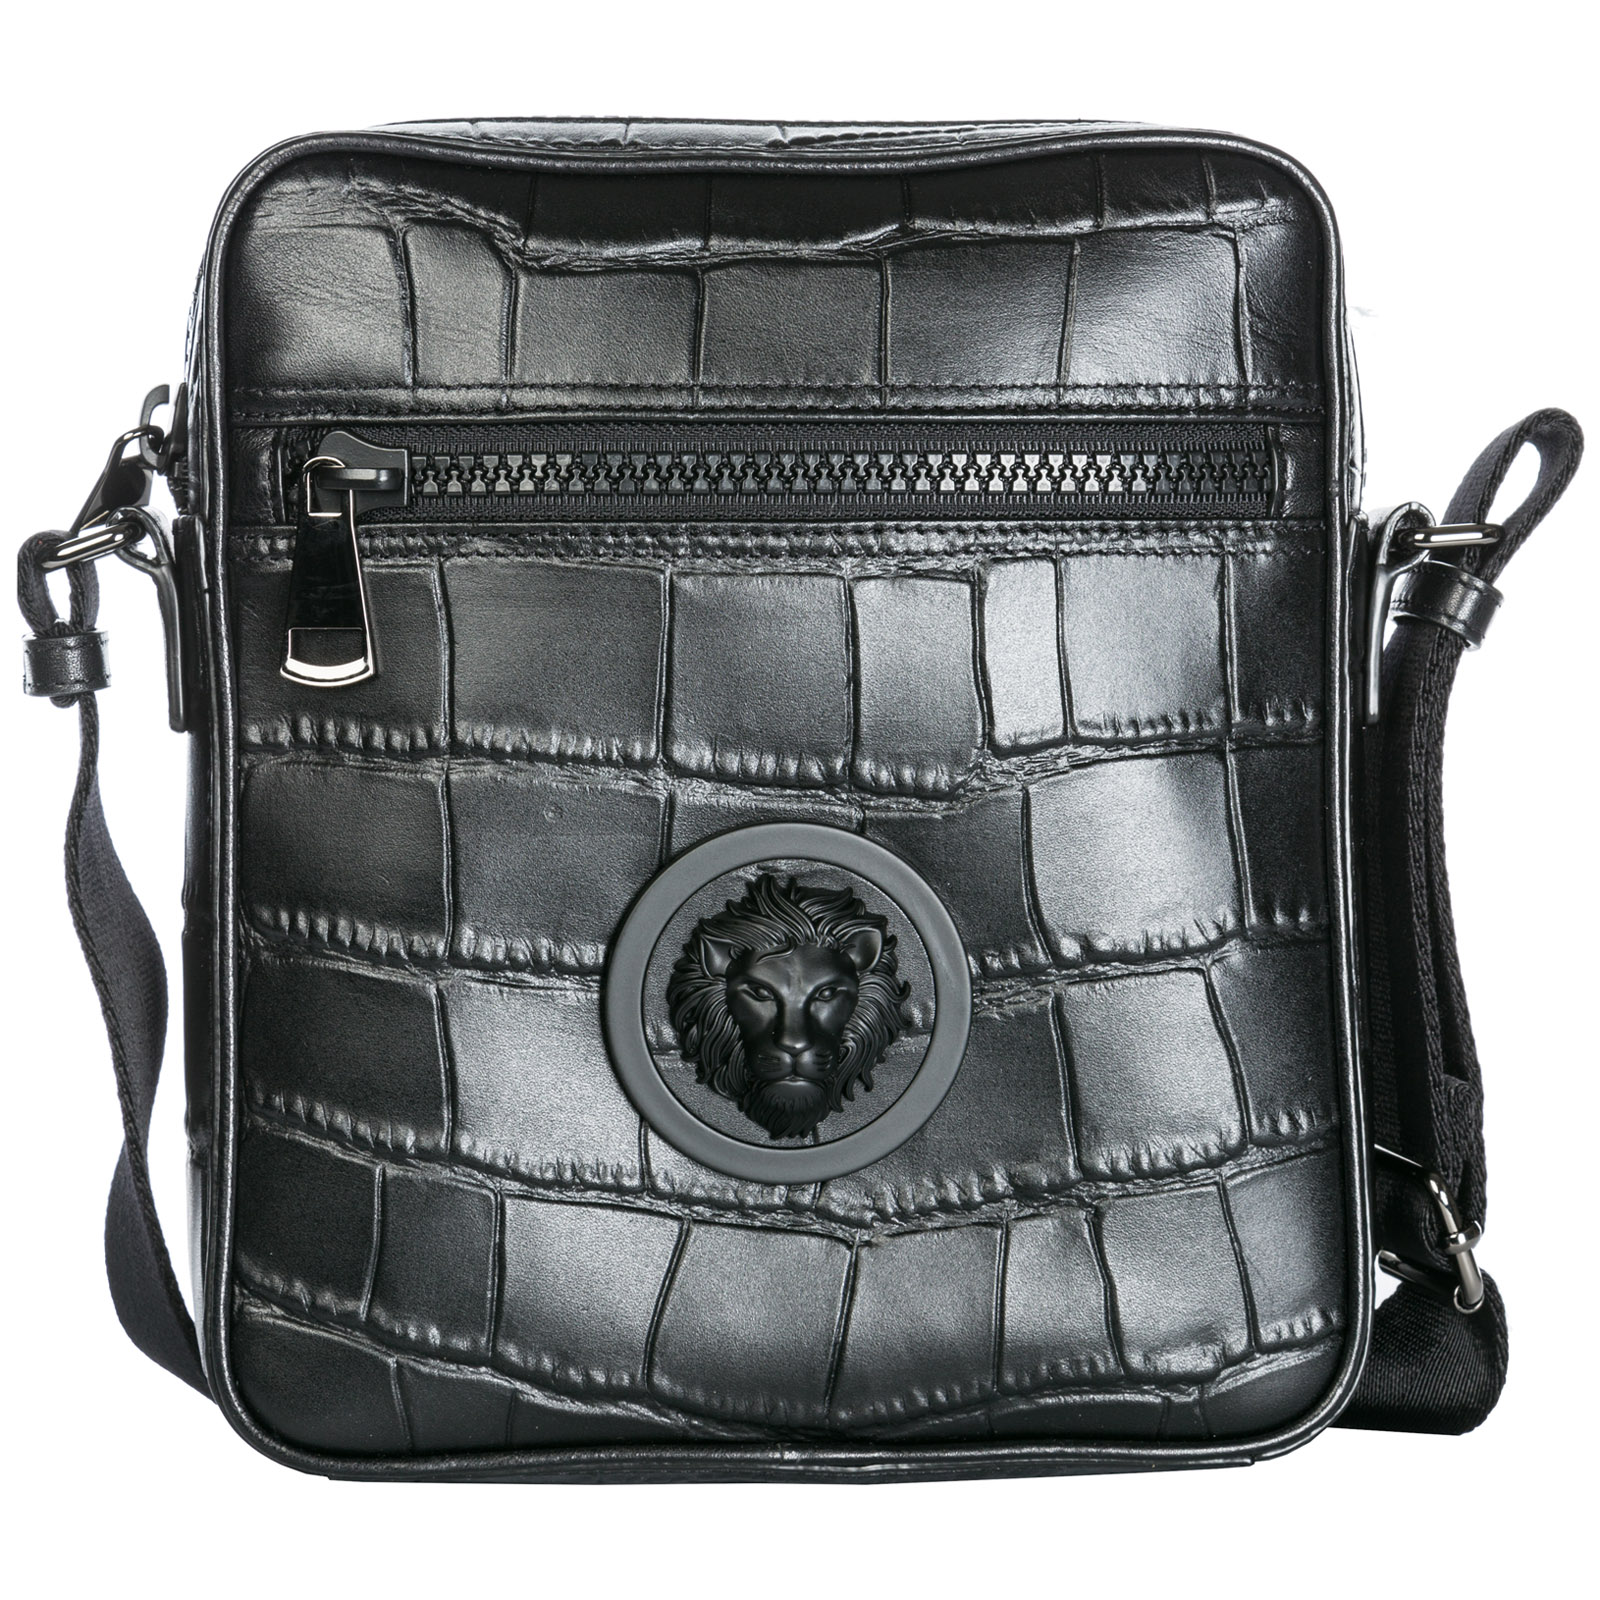 ef2b70b626 Versus Versace Men s leather cross-body messenger shoulder bag lion head